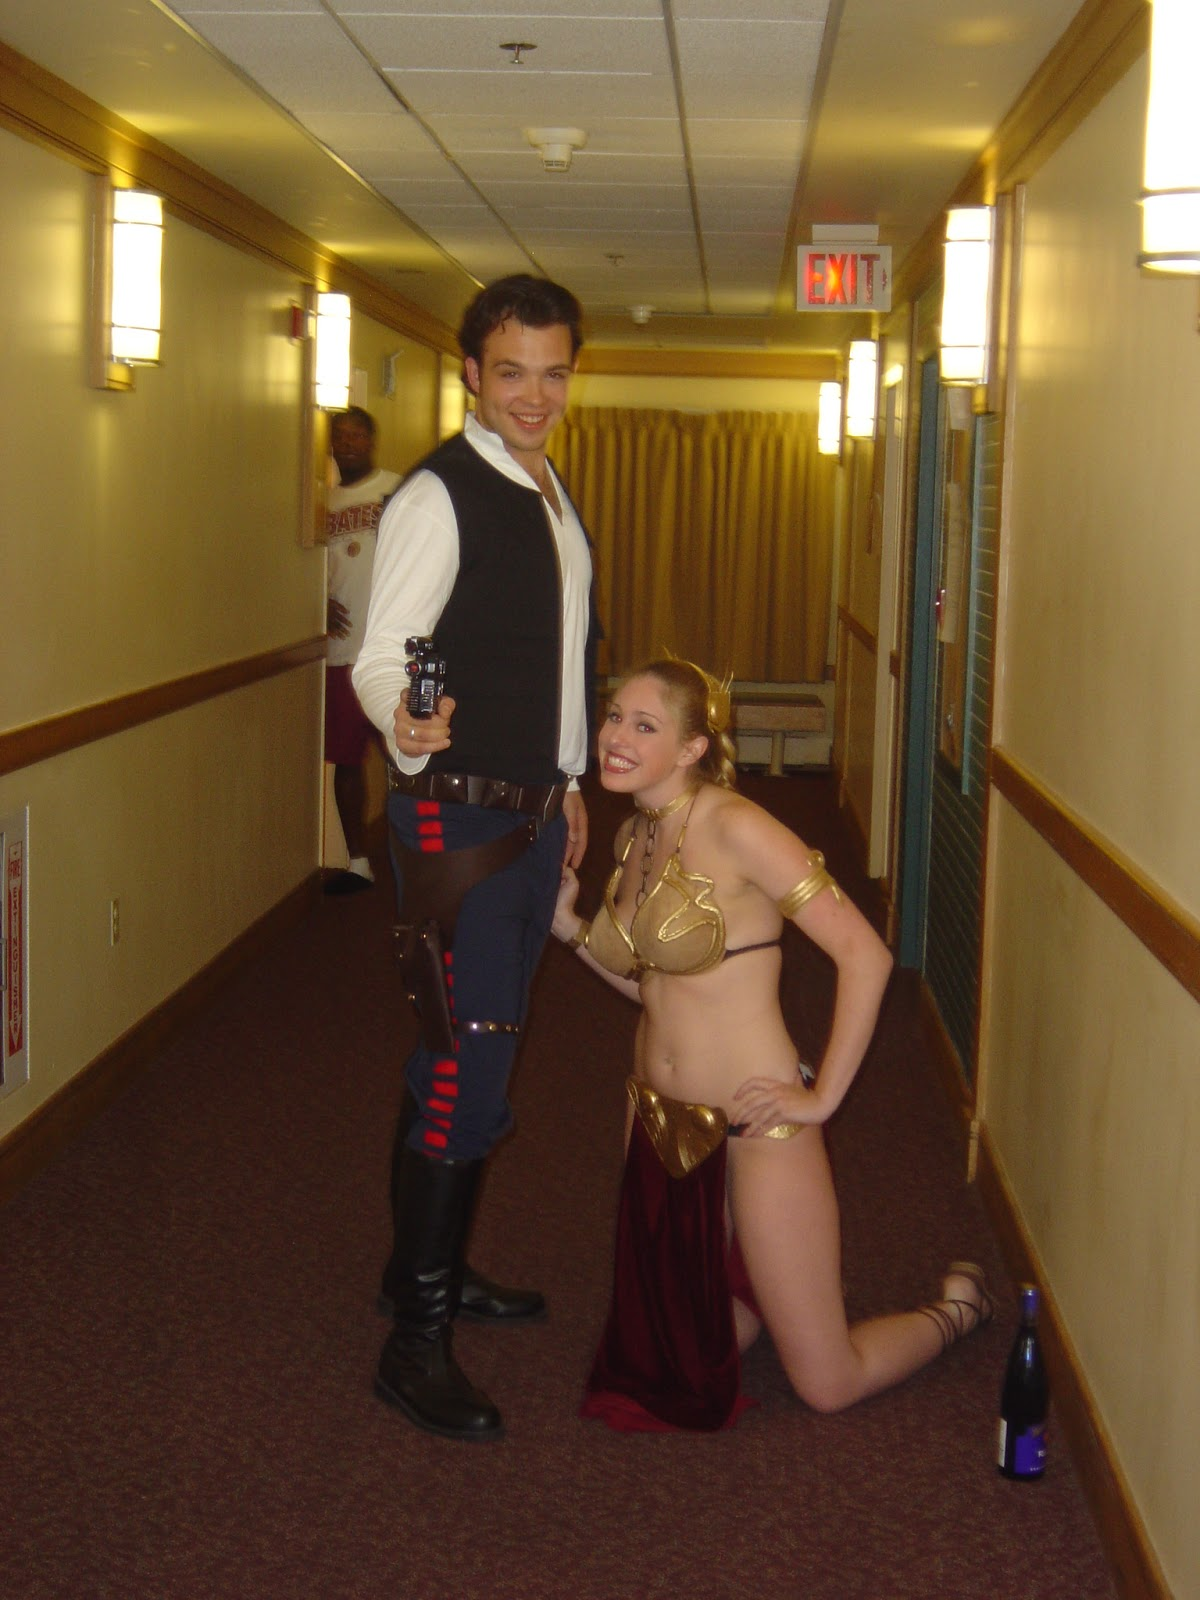 Happy Birthday Andrew (Section 8) Cosplay+-+Star+Wars+-+Slave+Leia+Gives+Han+Solo+A+Blowjob+-+Shelf+Porn+004